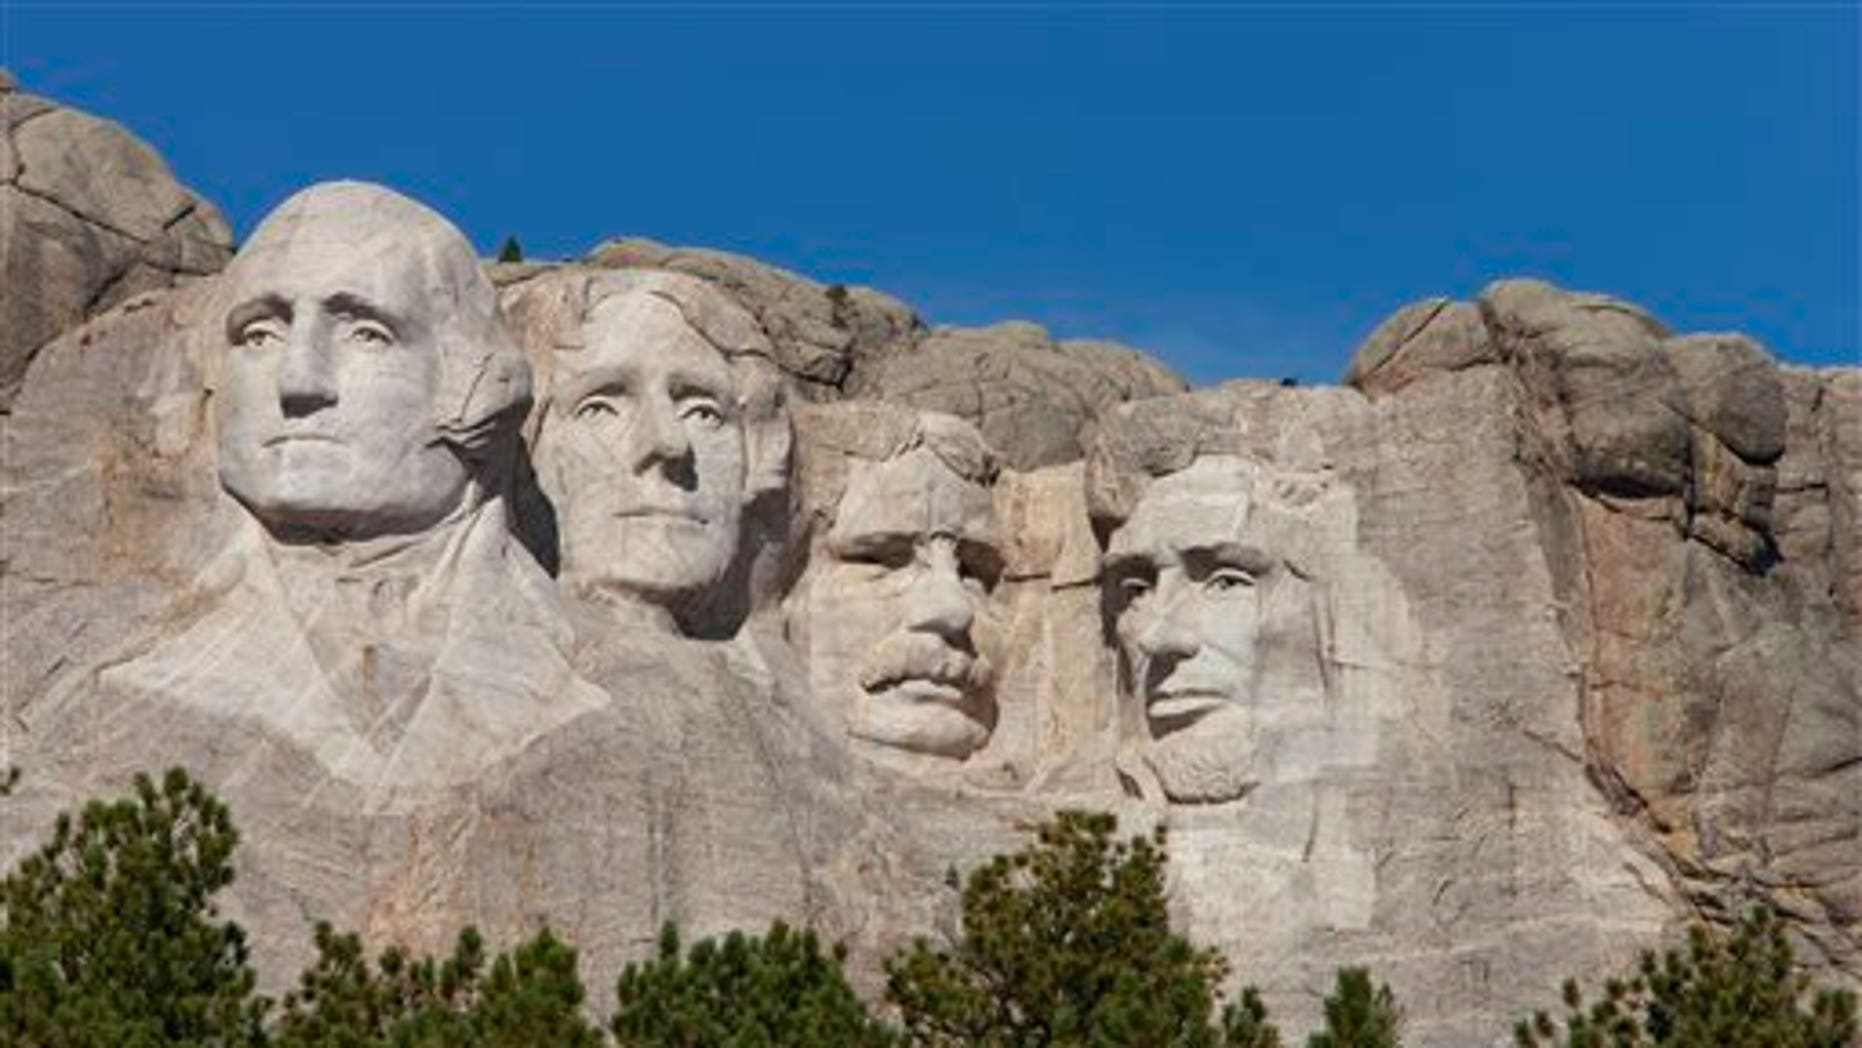 Mount Rushmore is celebrating the 75th anniversary of its completion this year.